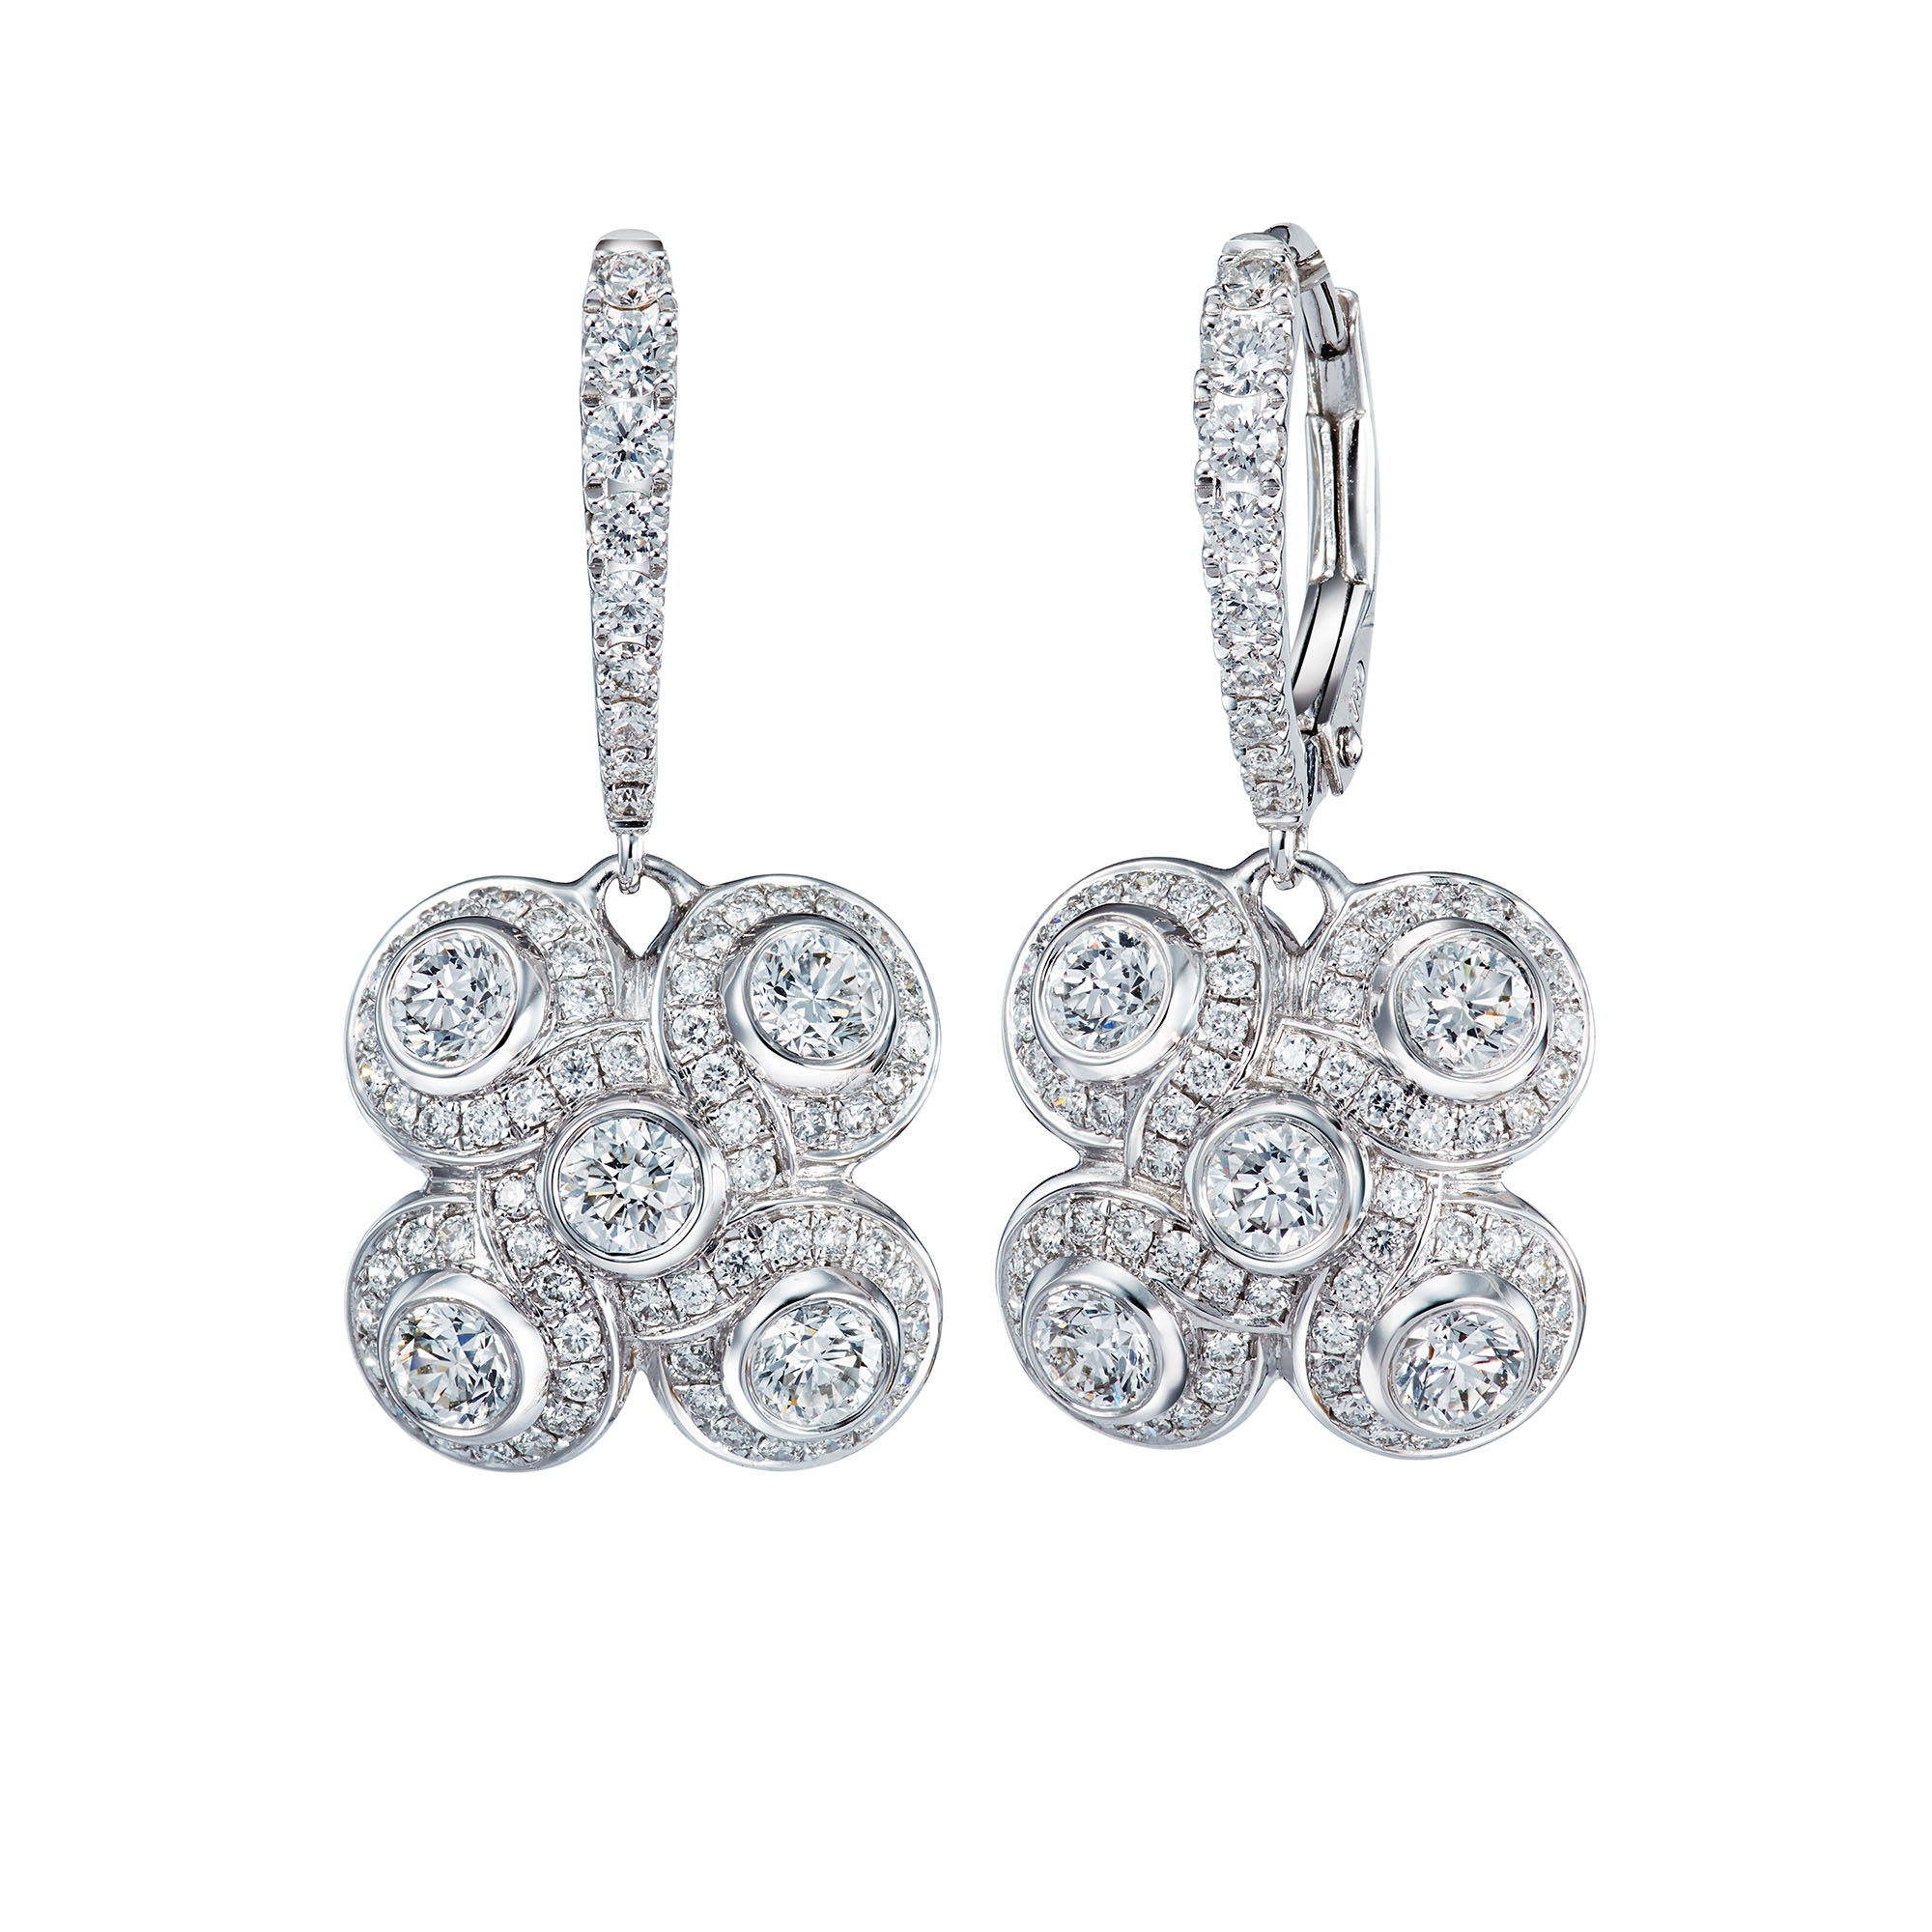 Venetian Knot Diamond Earrings